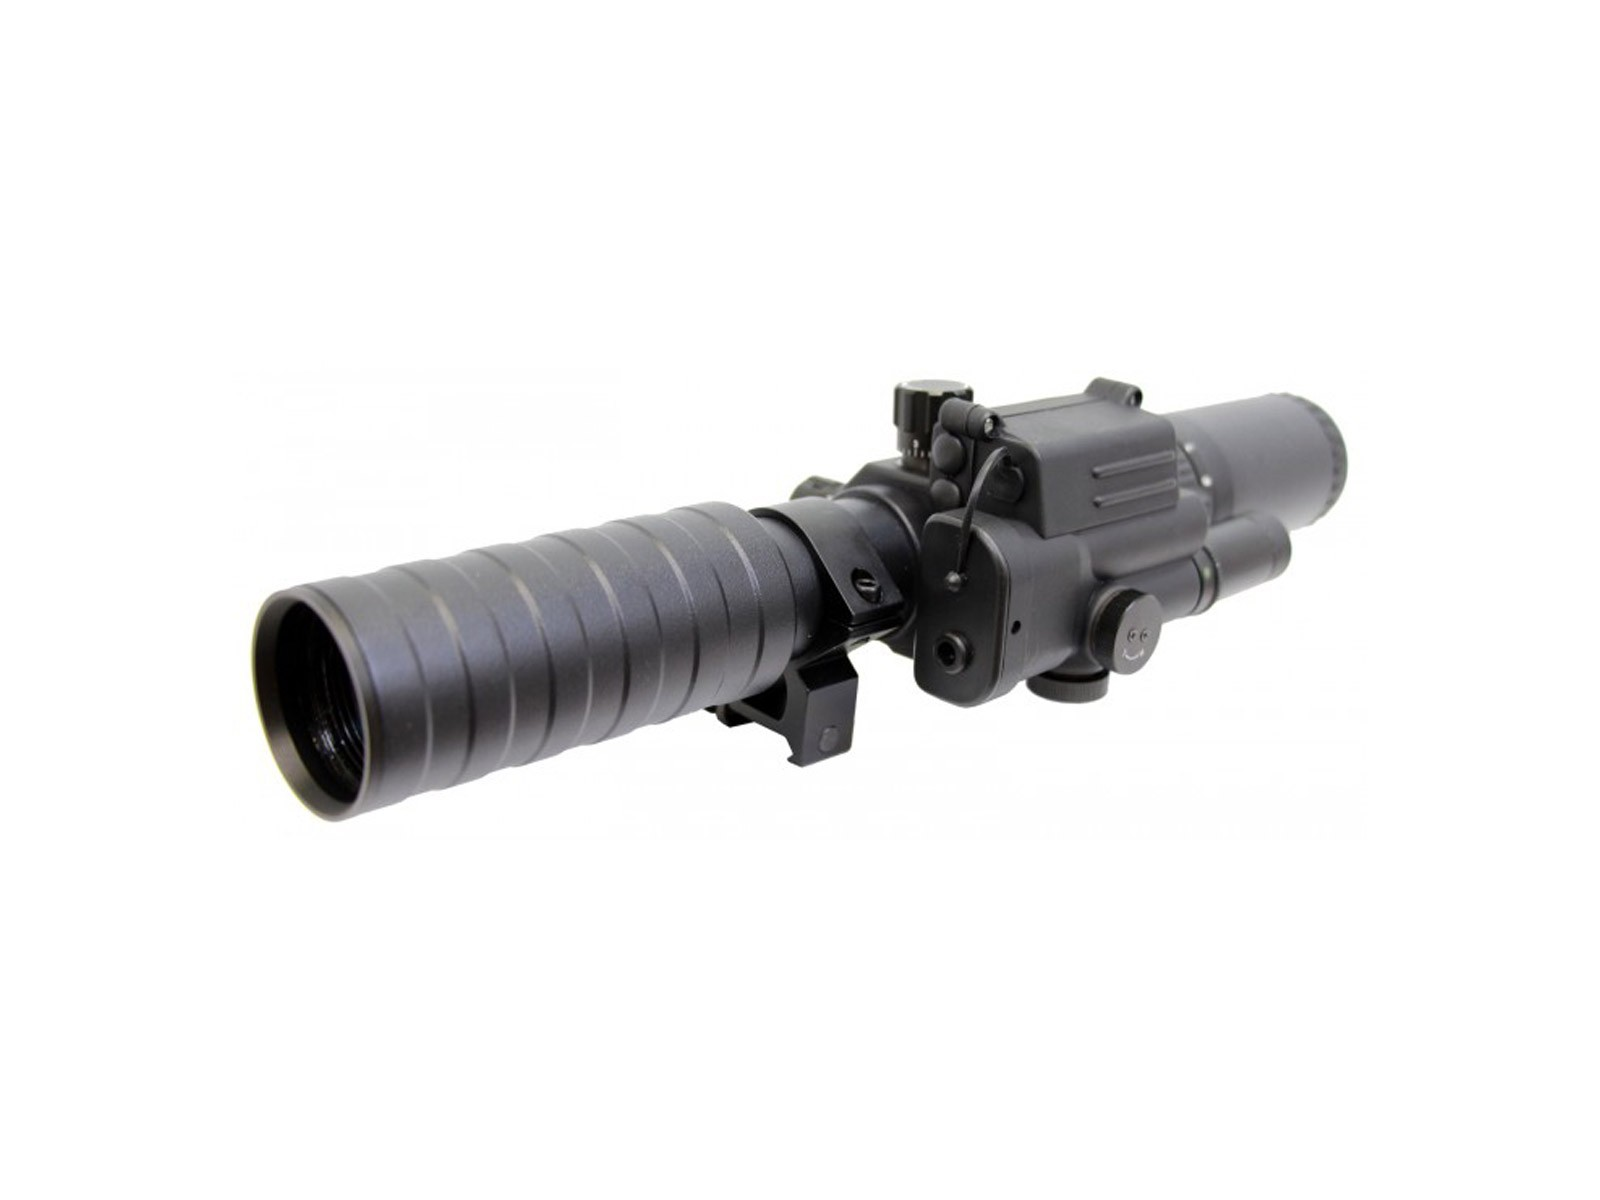 PY A 7328_Spartan 39x32 Variable Air_1457645444 utg accushot 4 16x56 ao rifle scope, swat, ez tap, illuminated dmp xt 50 wiring diagram at metegol.co